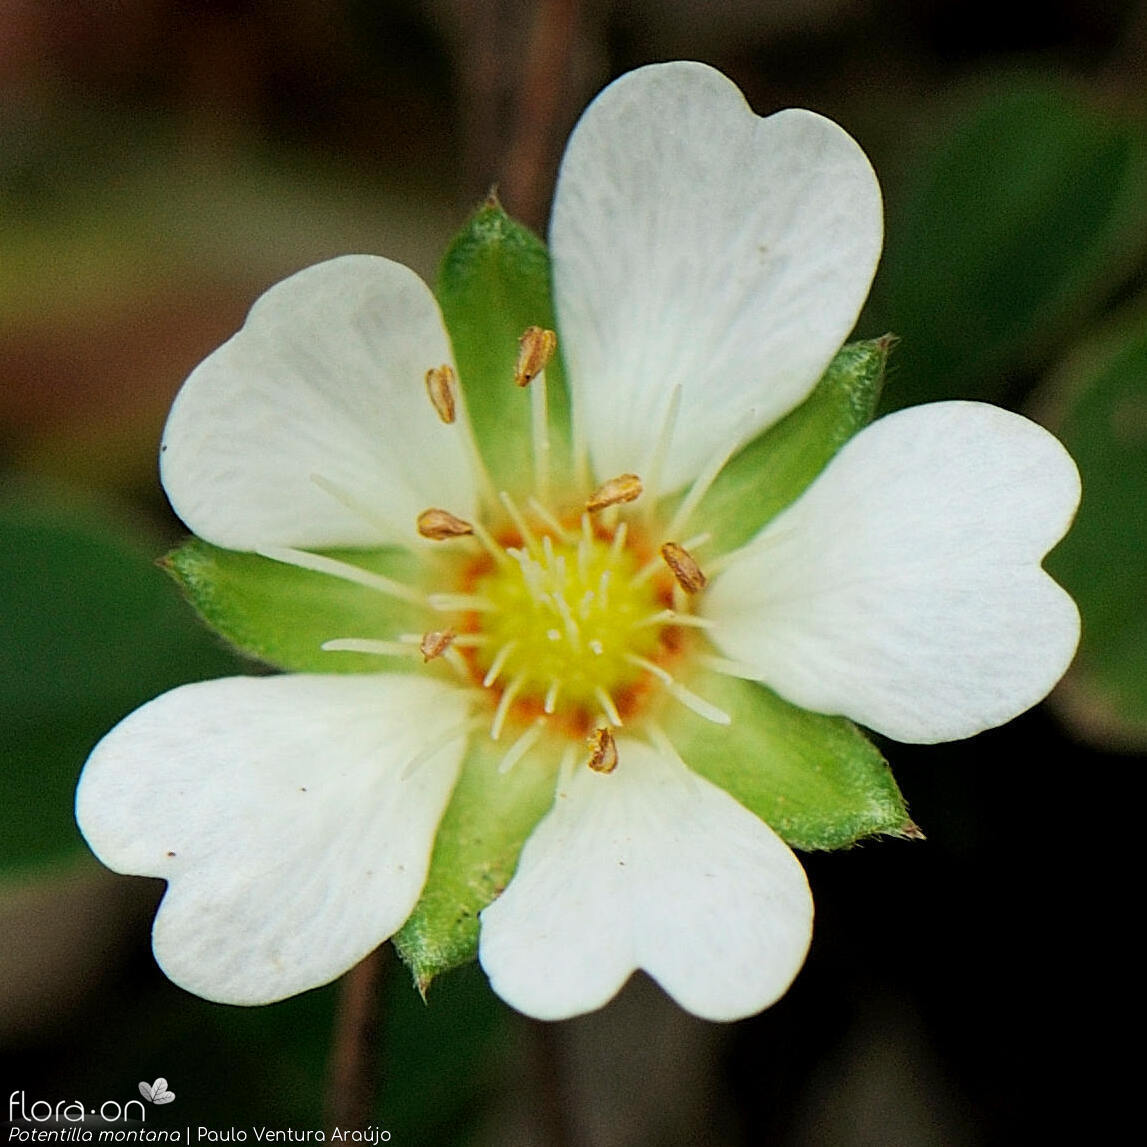 Potentilla montana - Flor (close-up) | Paulo Ventura Araújo; CC BY-NC 4.0